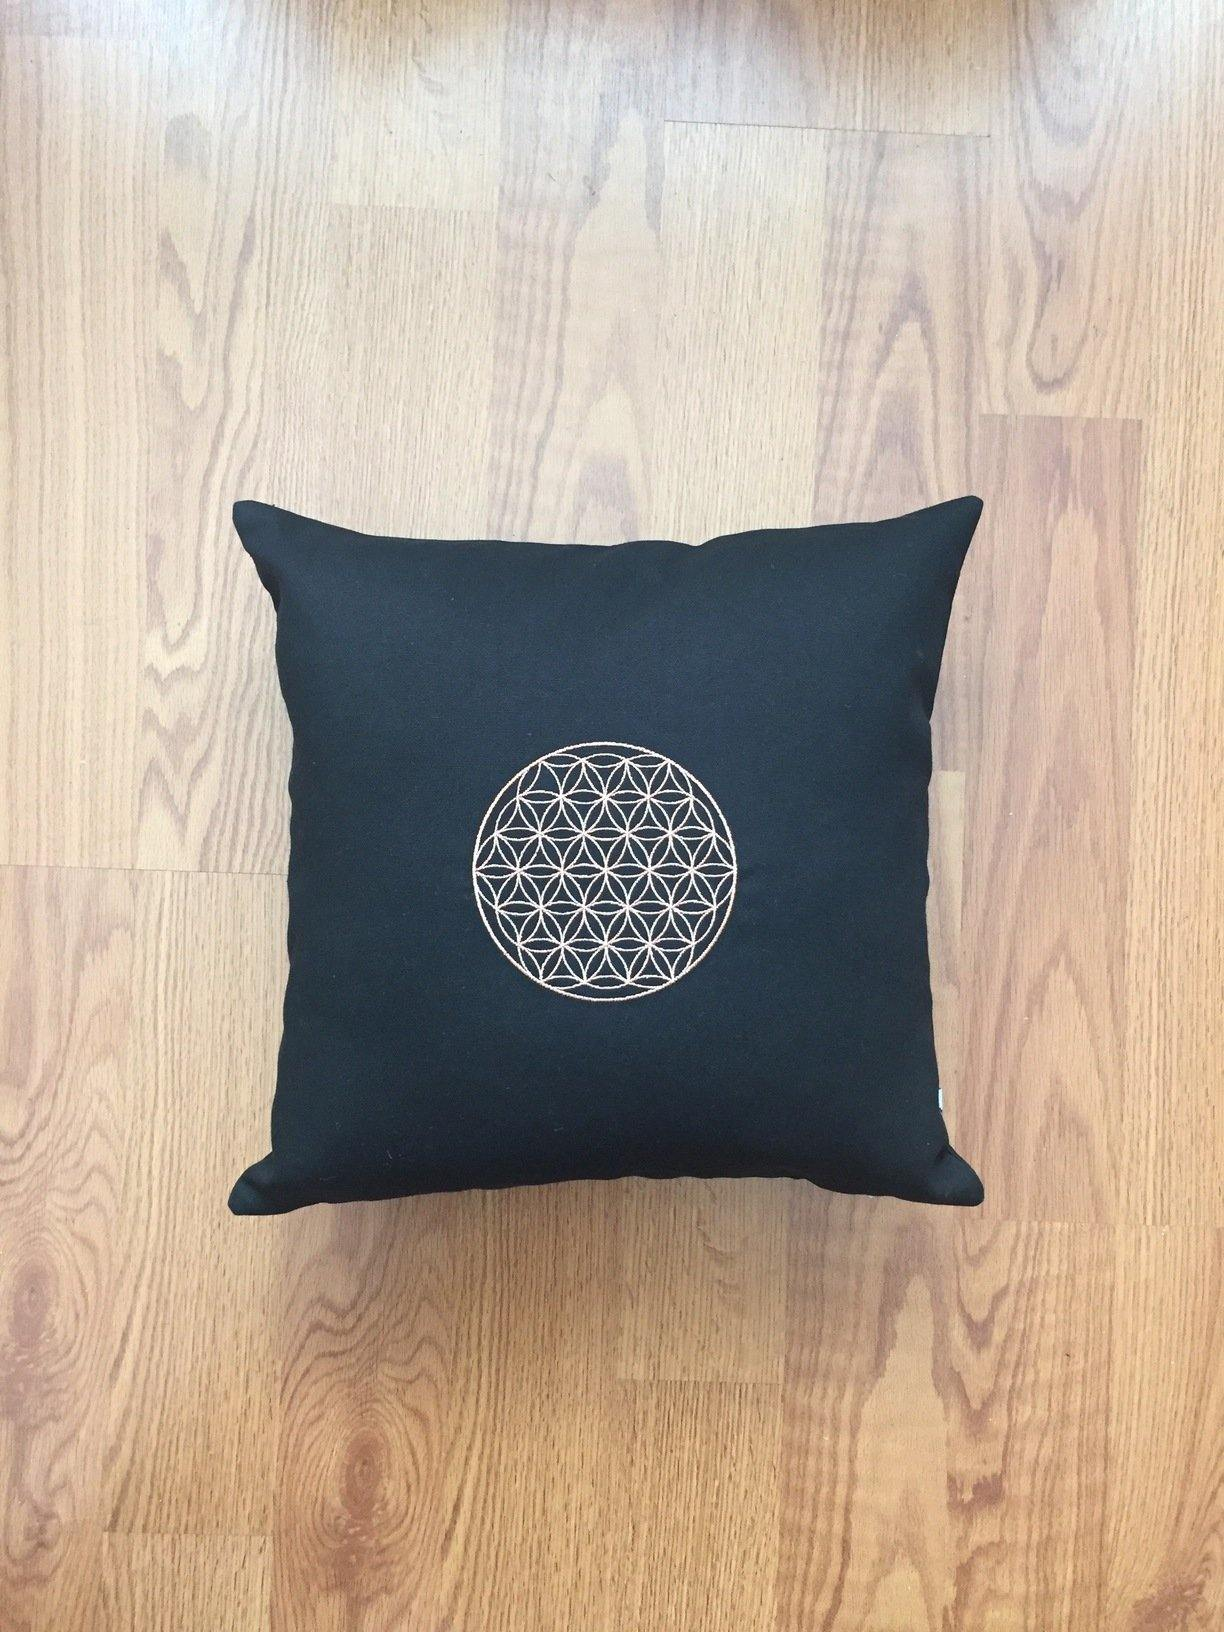 Embroidered Pillow with Flower of Life - Copper